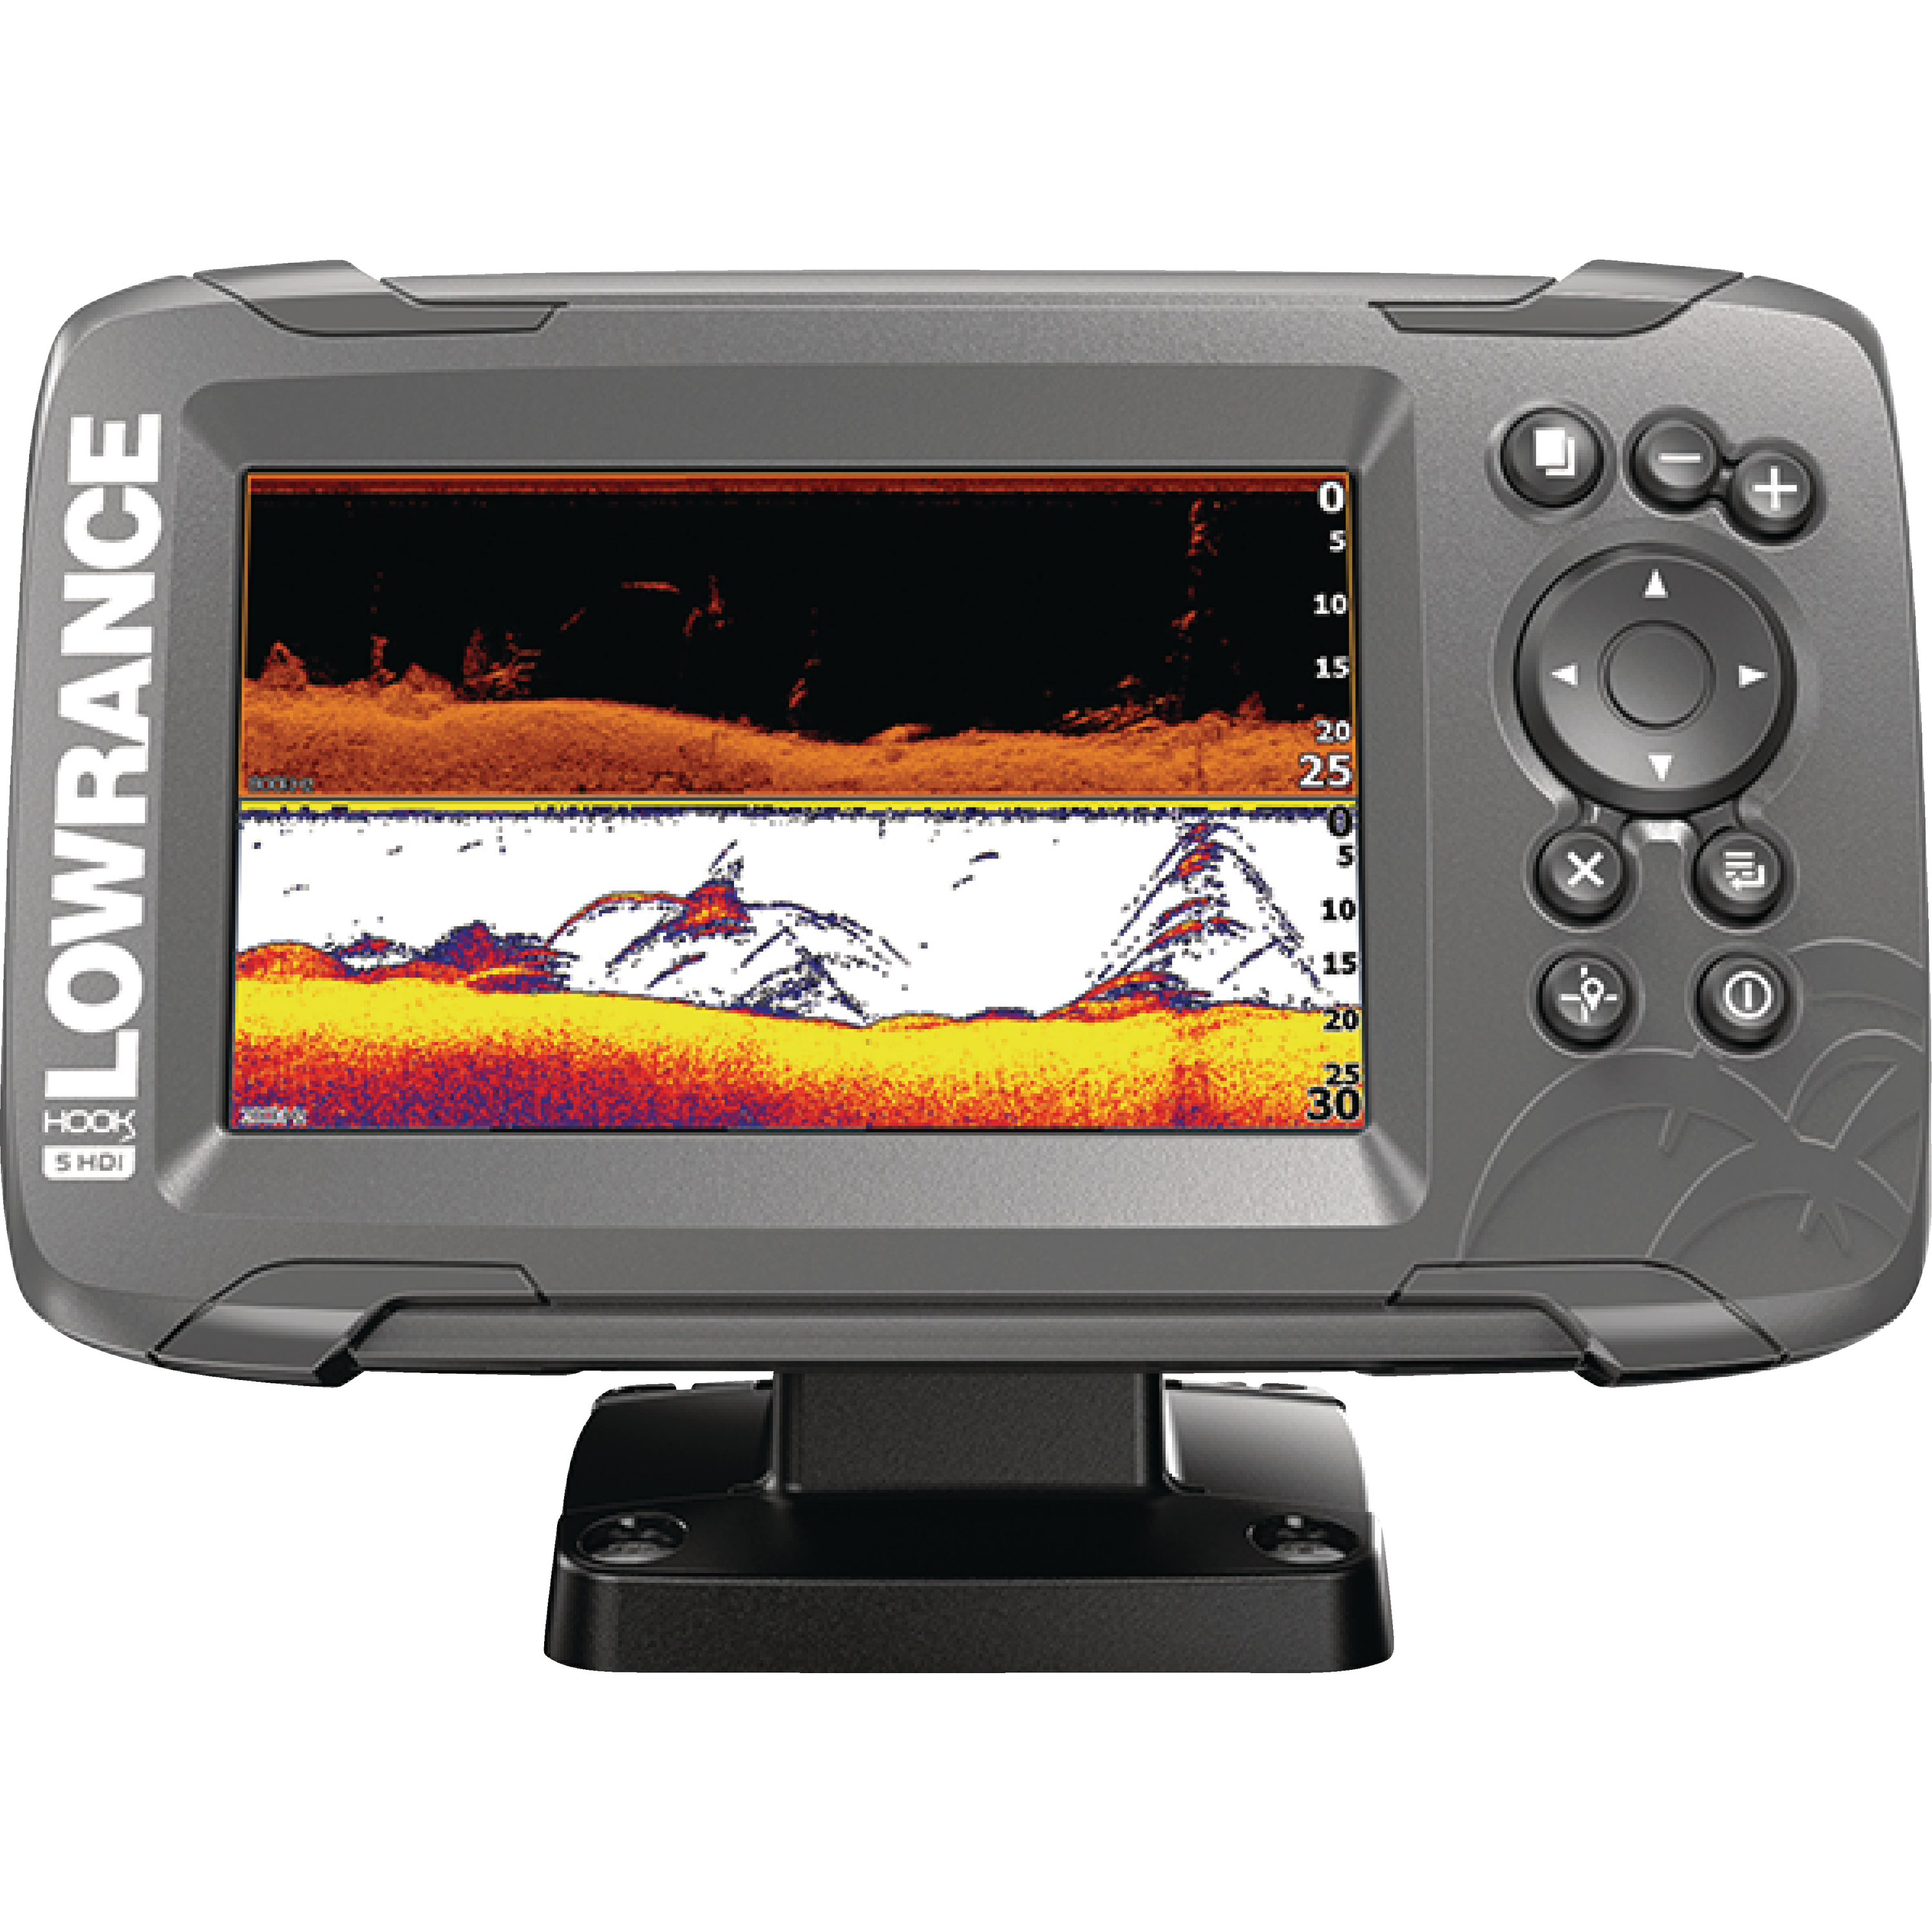 "Lowrance 000-14282-001 HOOK-2 5 Fishfinder with SplitShot Transducer, US/Canada Nav+ Maps, CHIRP, DownScan Imaging & 5"" Display"